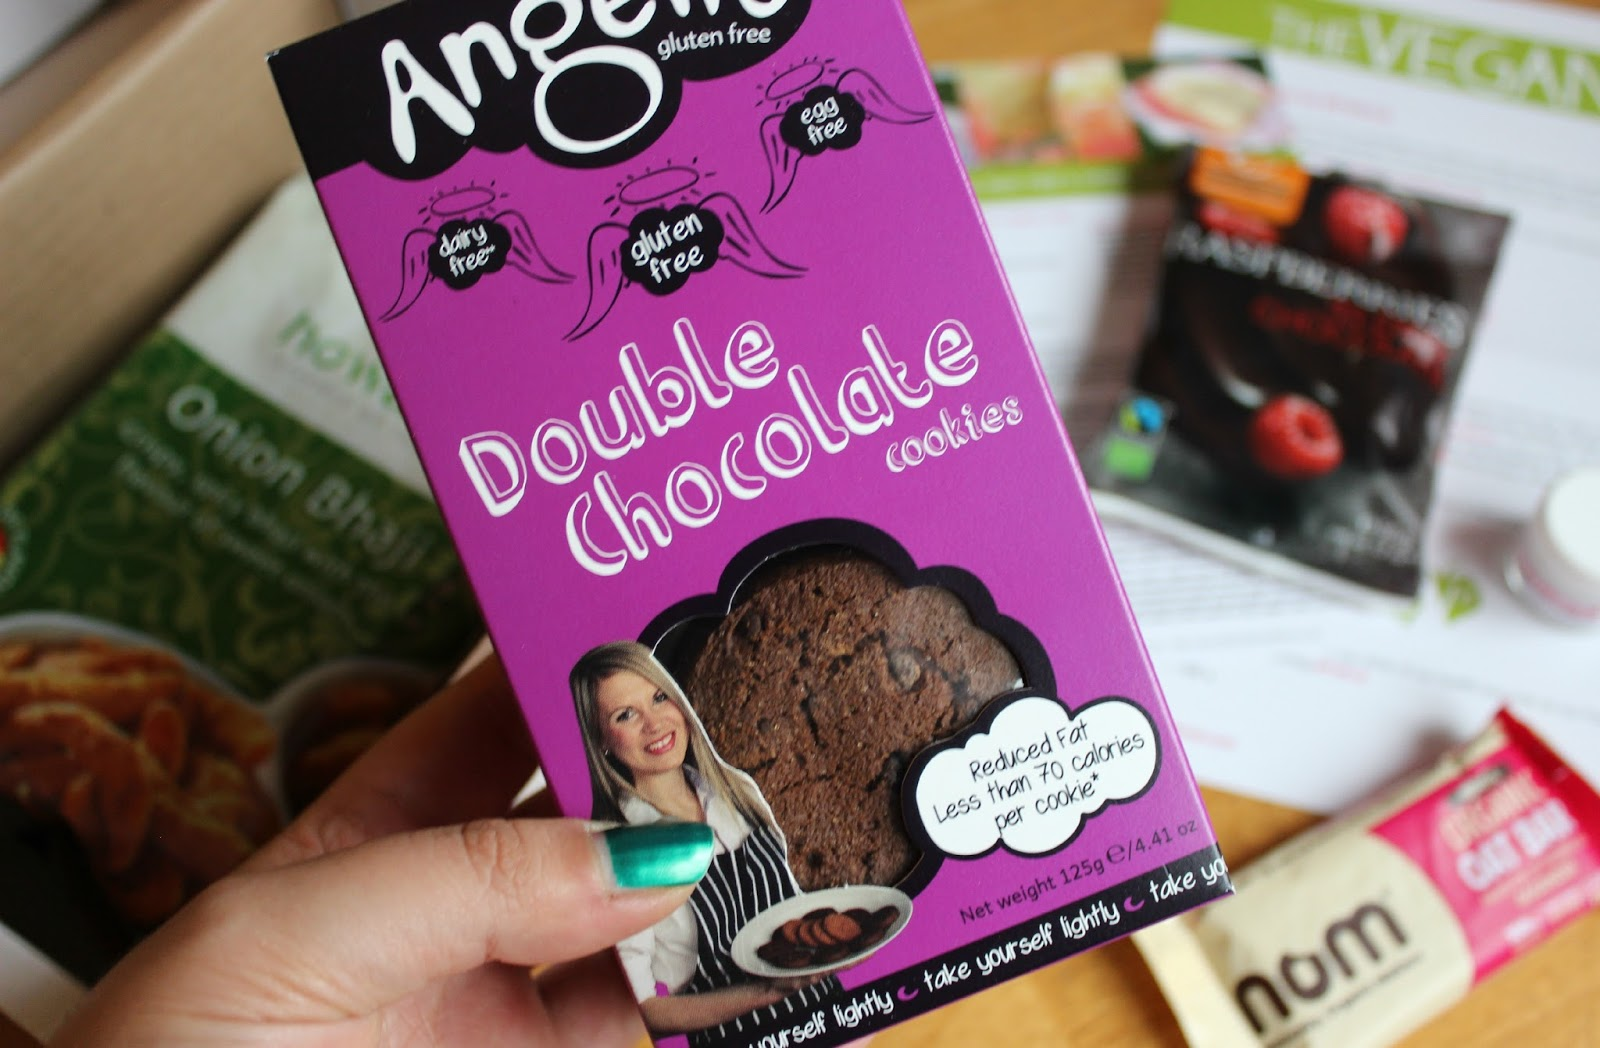 A picture of Angelic Gluten Free Double Chocolate Cookies